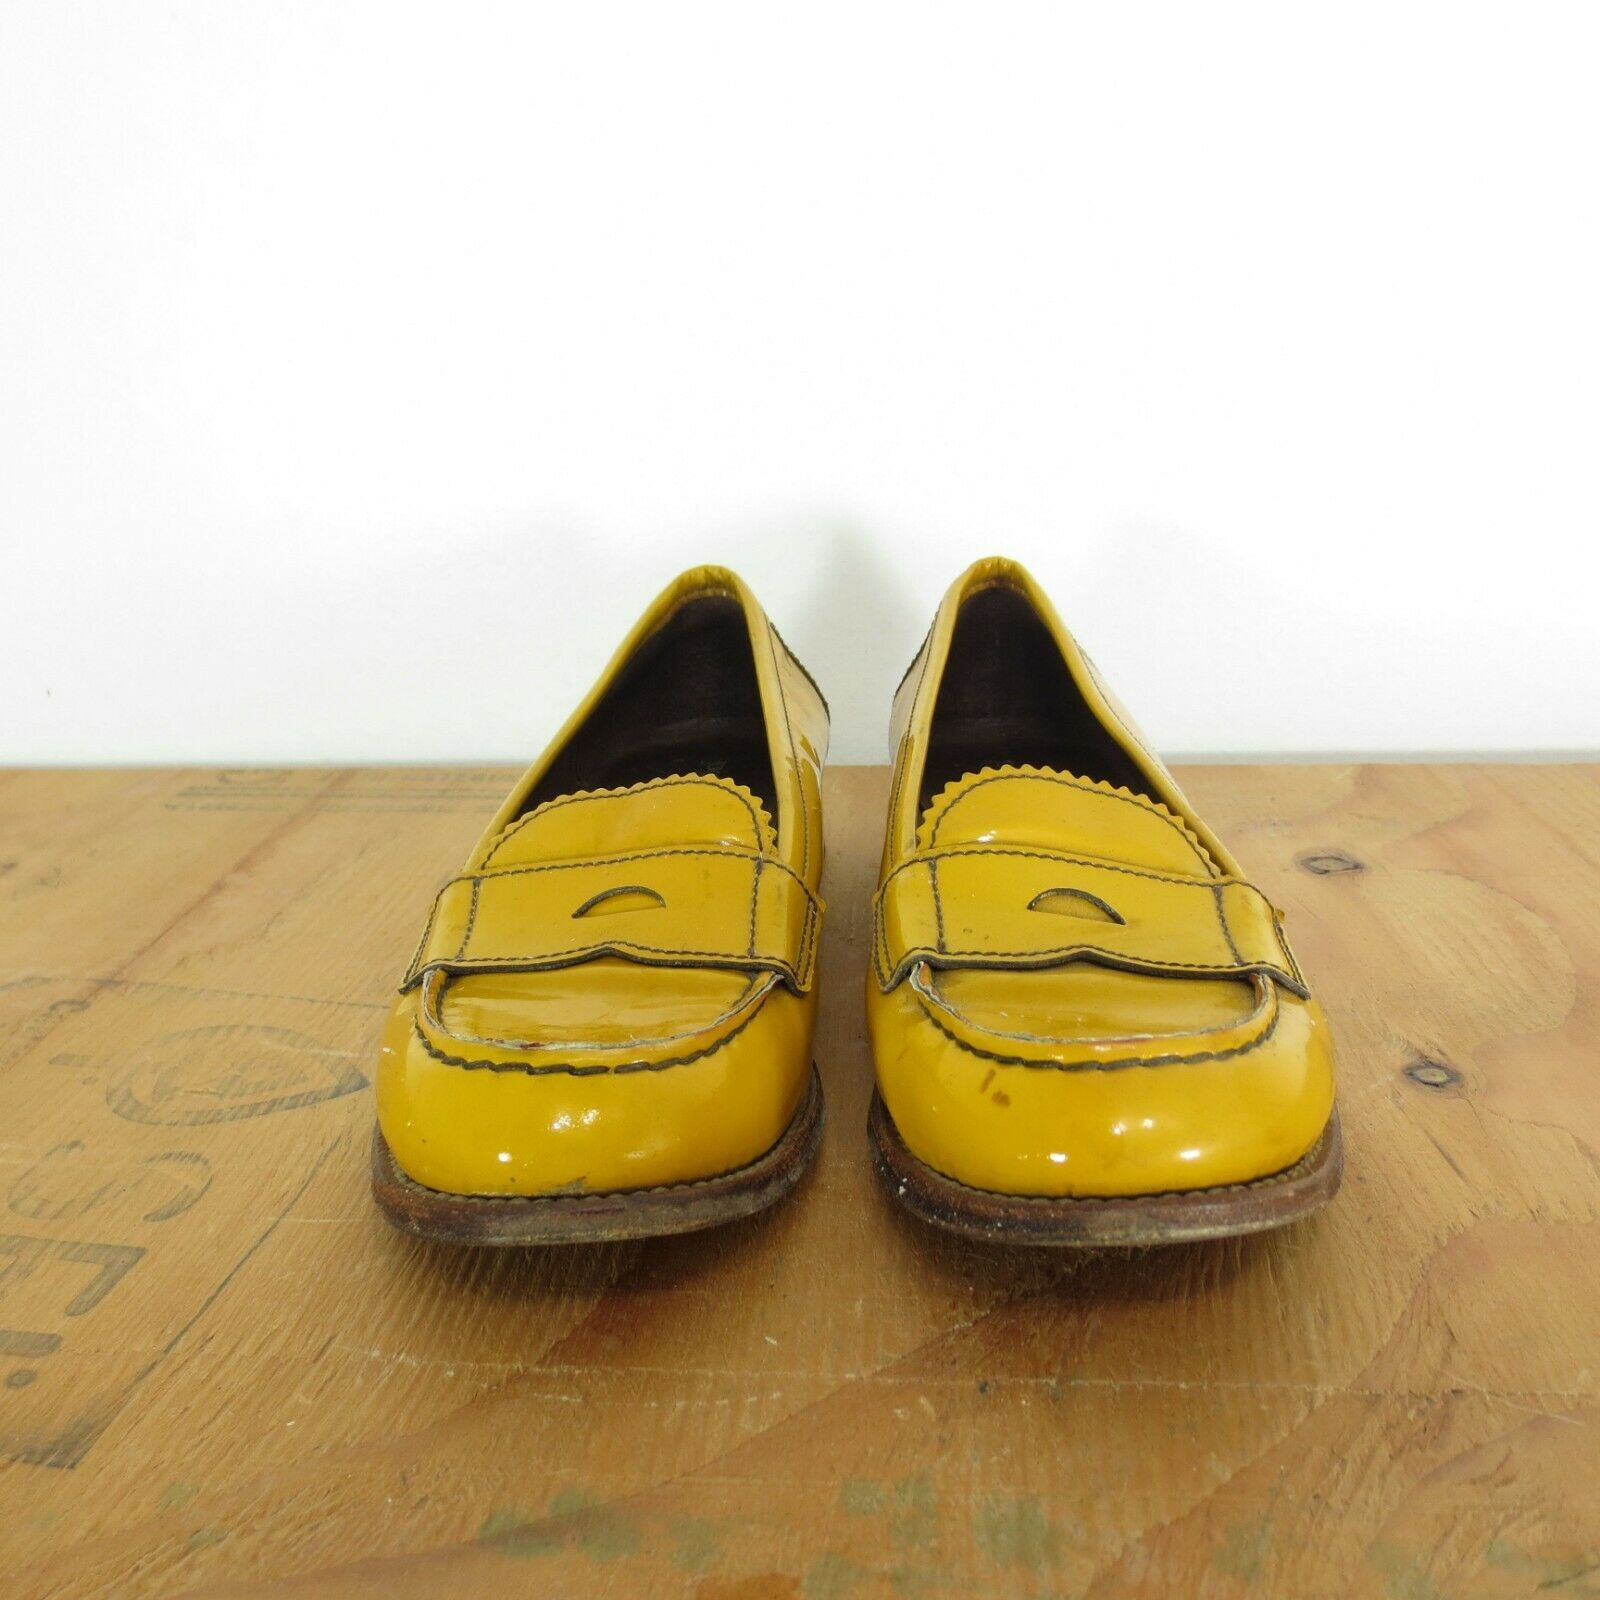 37 / 7 - Prada Womens Mustard Yellow Patent Leather Penny ...